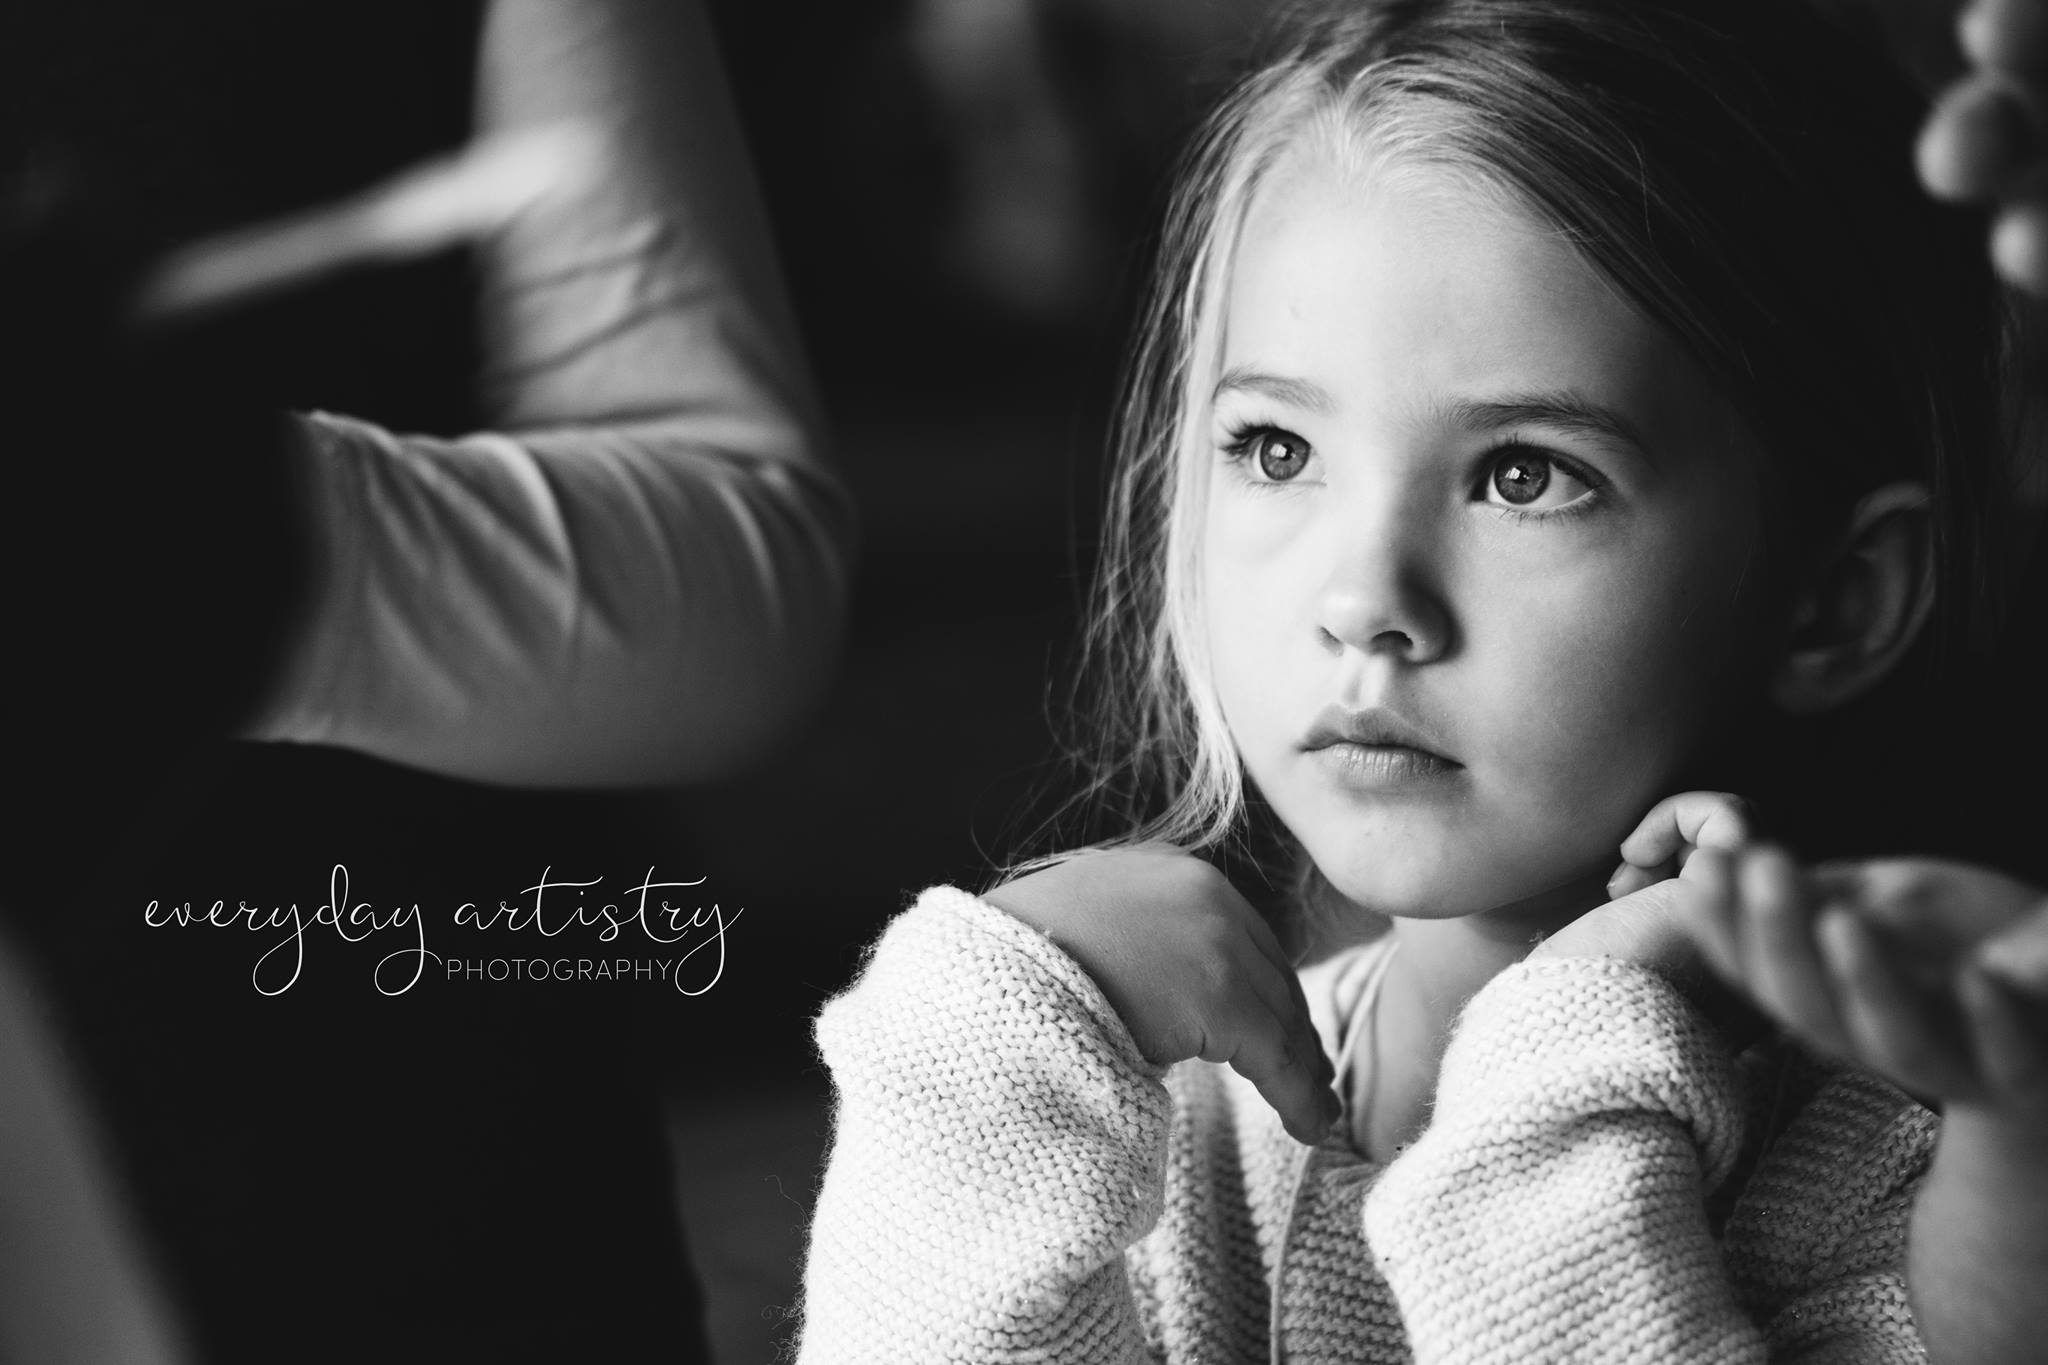 everyday artistry photography emotive black and white family posing beautiful